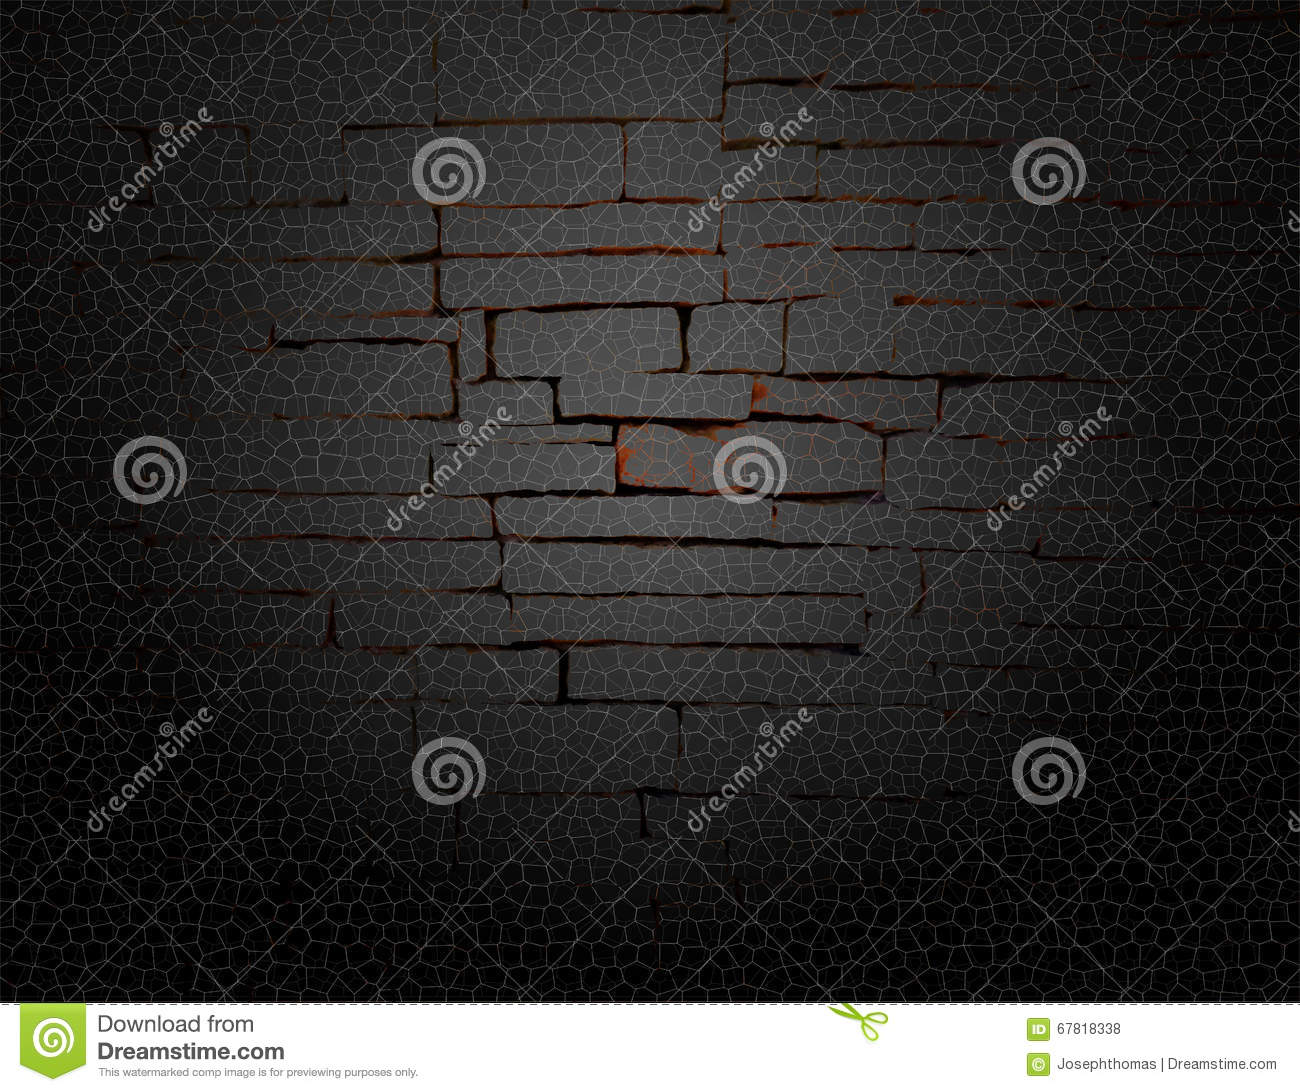 Black Gray And Red Rustic Old Fashioned Brick Wall With Elegant String Lights Grid Background Design Graphic